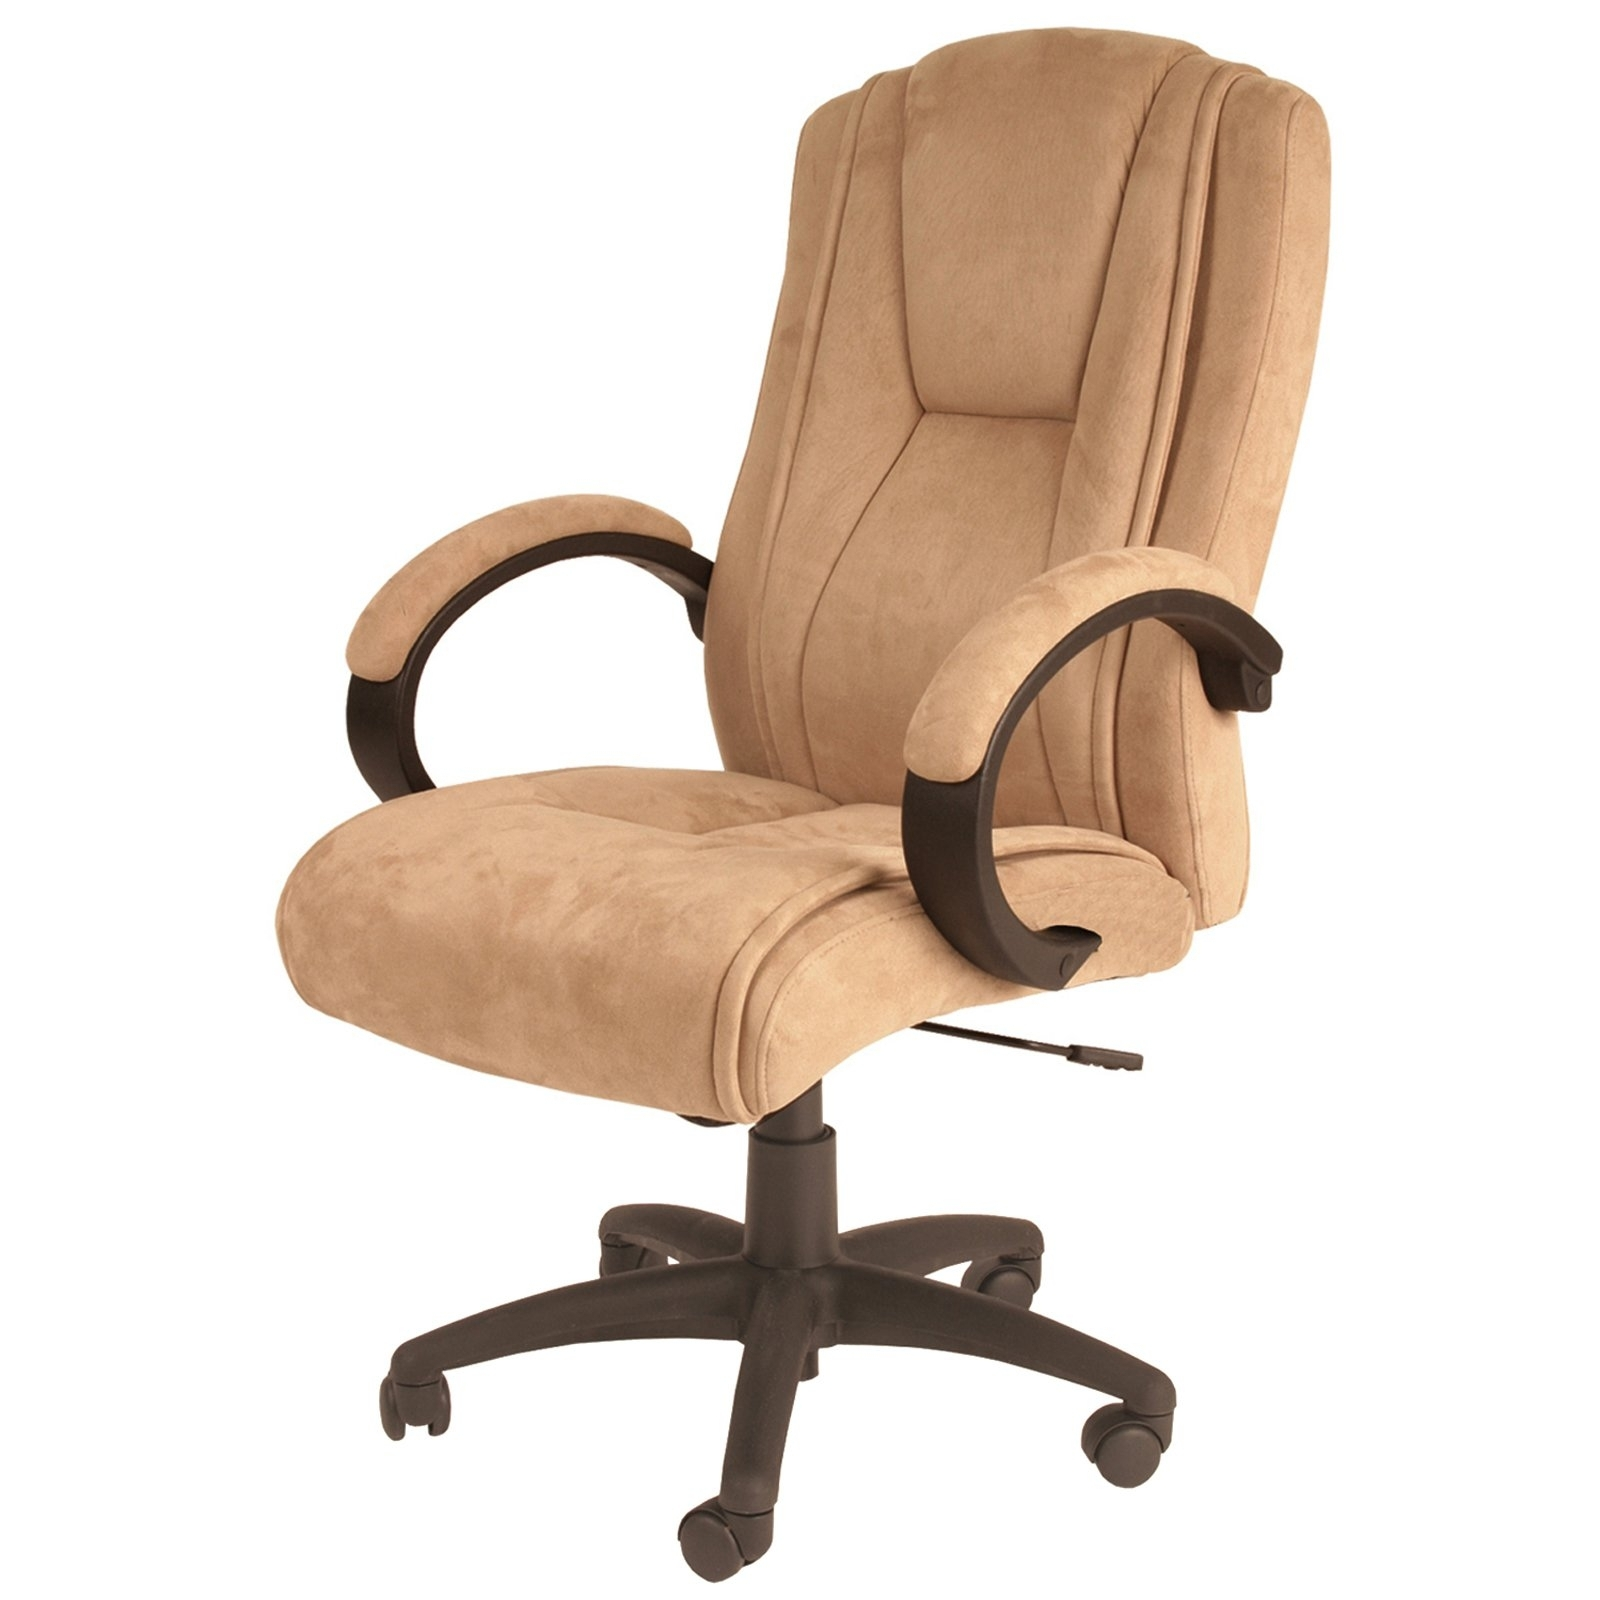 Brown Executive Office Chairs Pertaining To Most Up To Date Tan Suede Office Chair • Office Chairs (View 12 of 20)